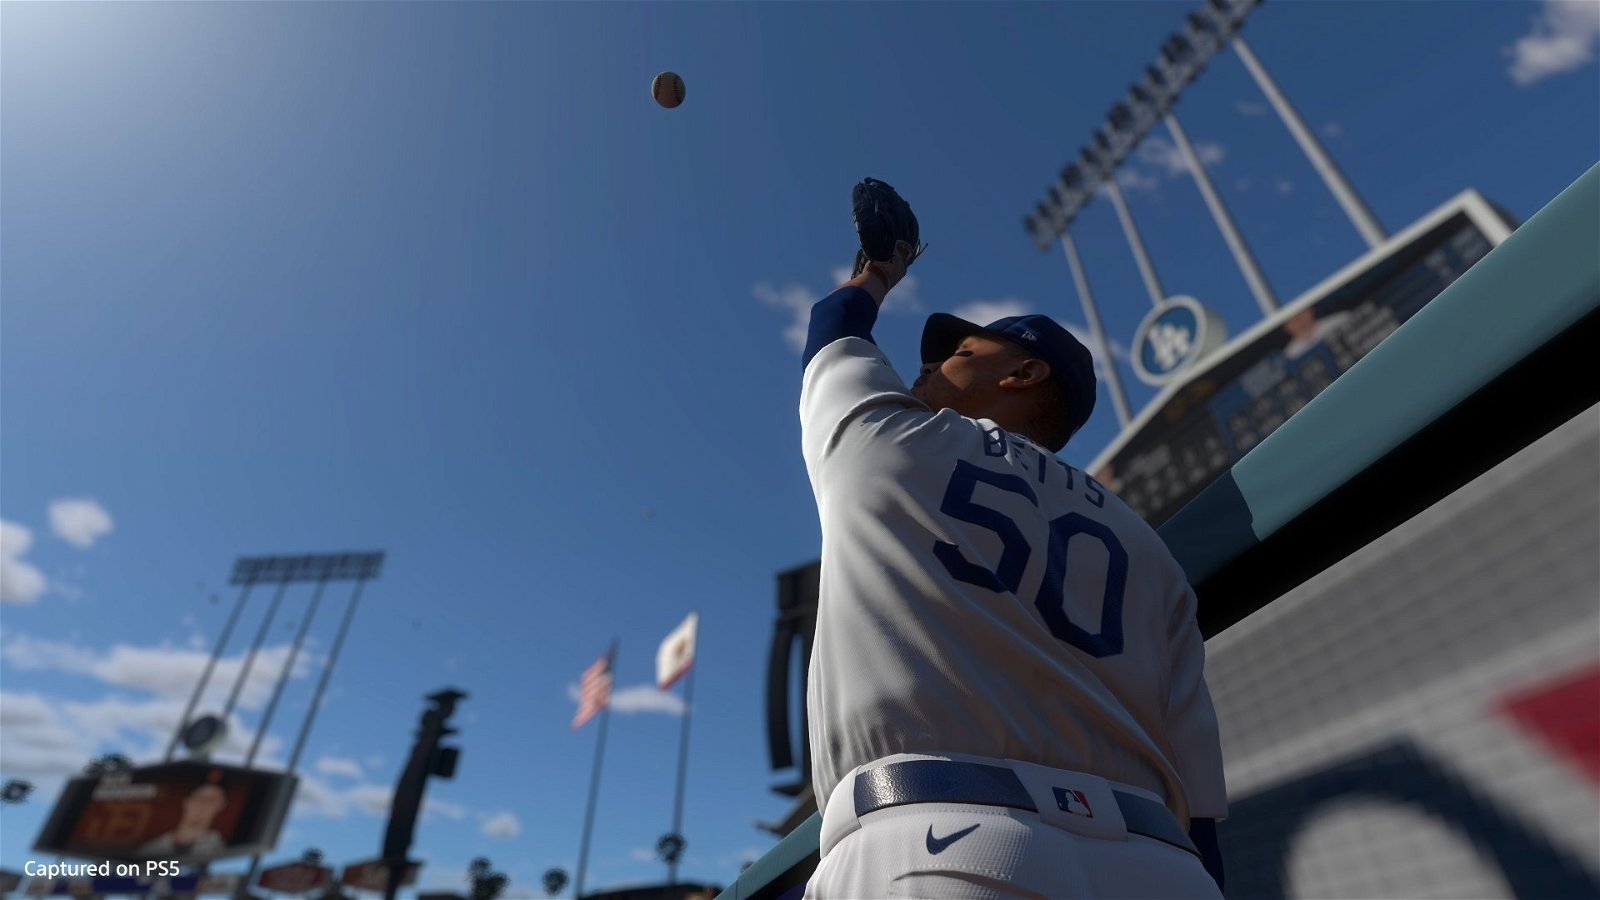 MLB The Show 21 (PS5) Review